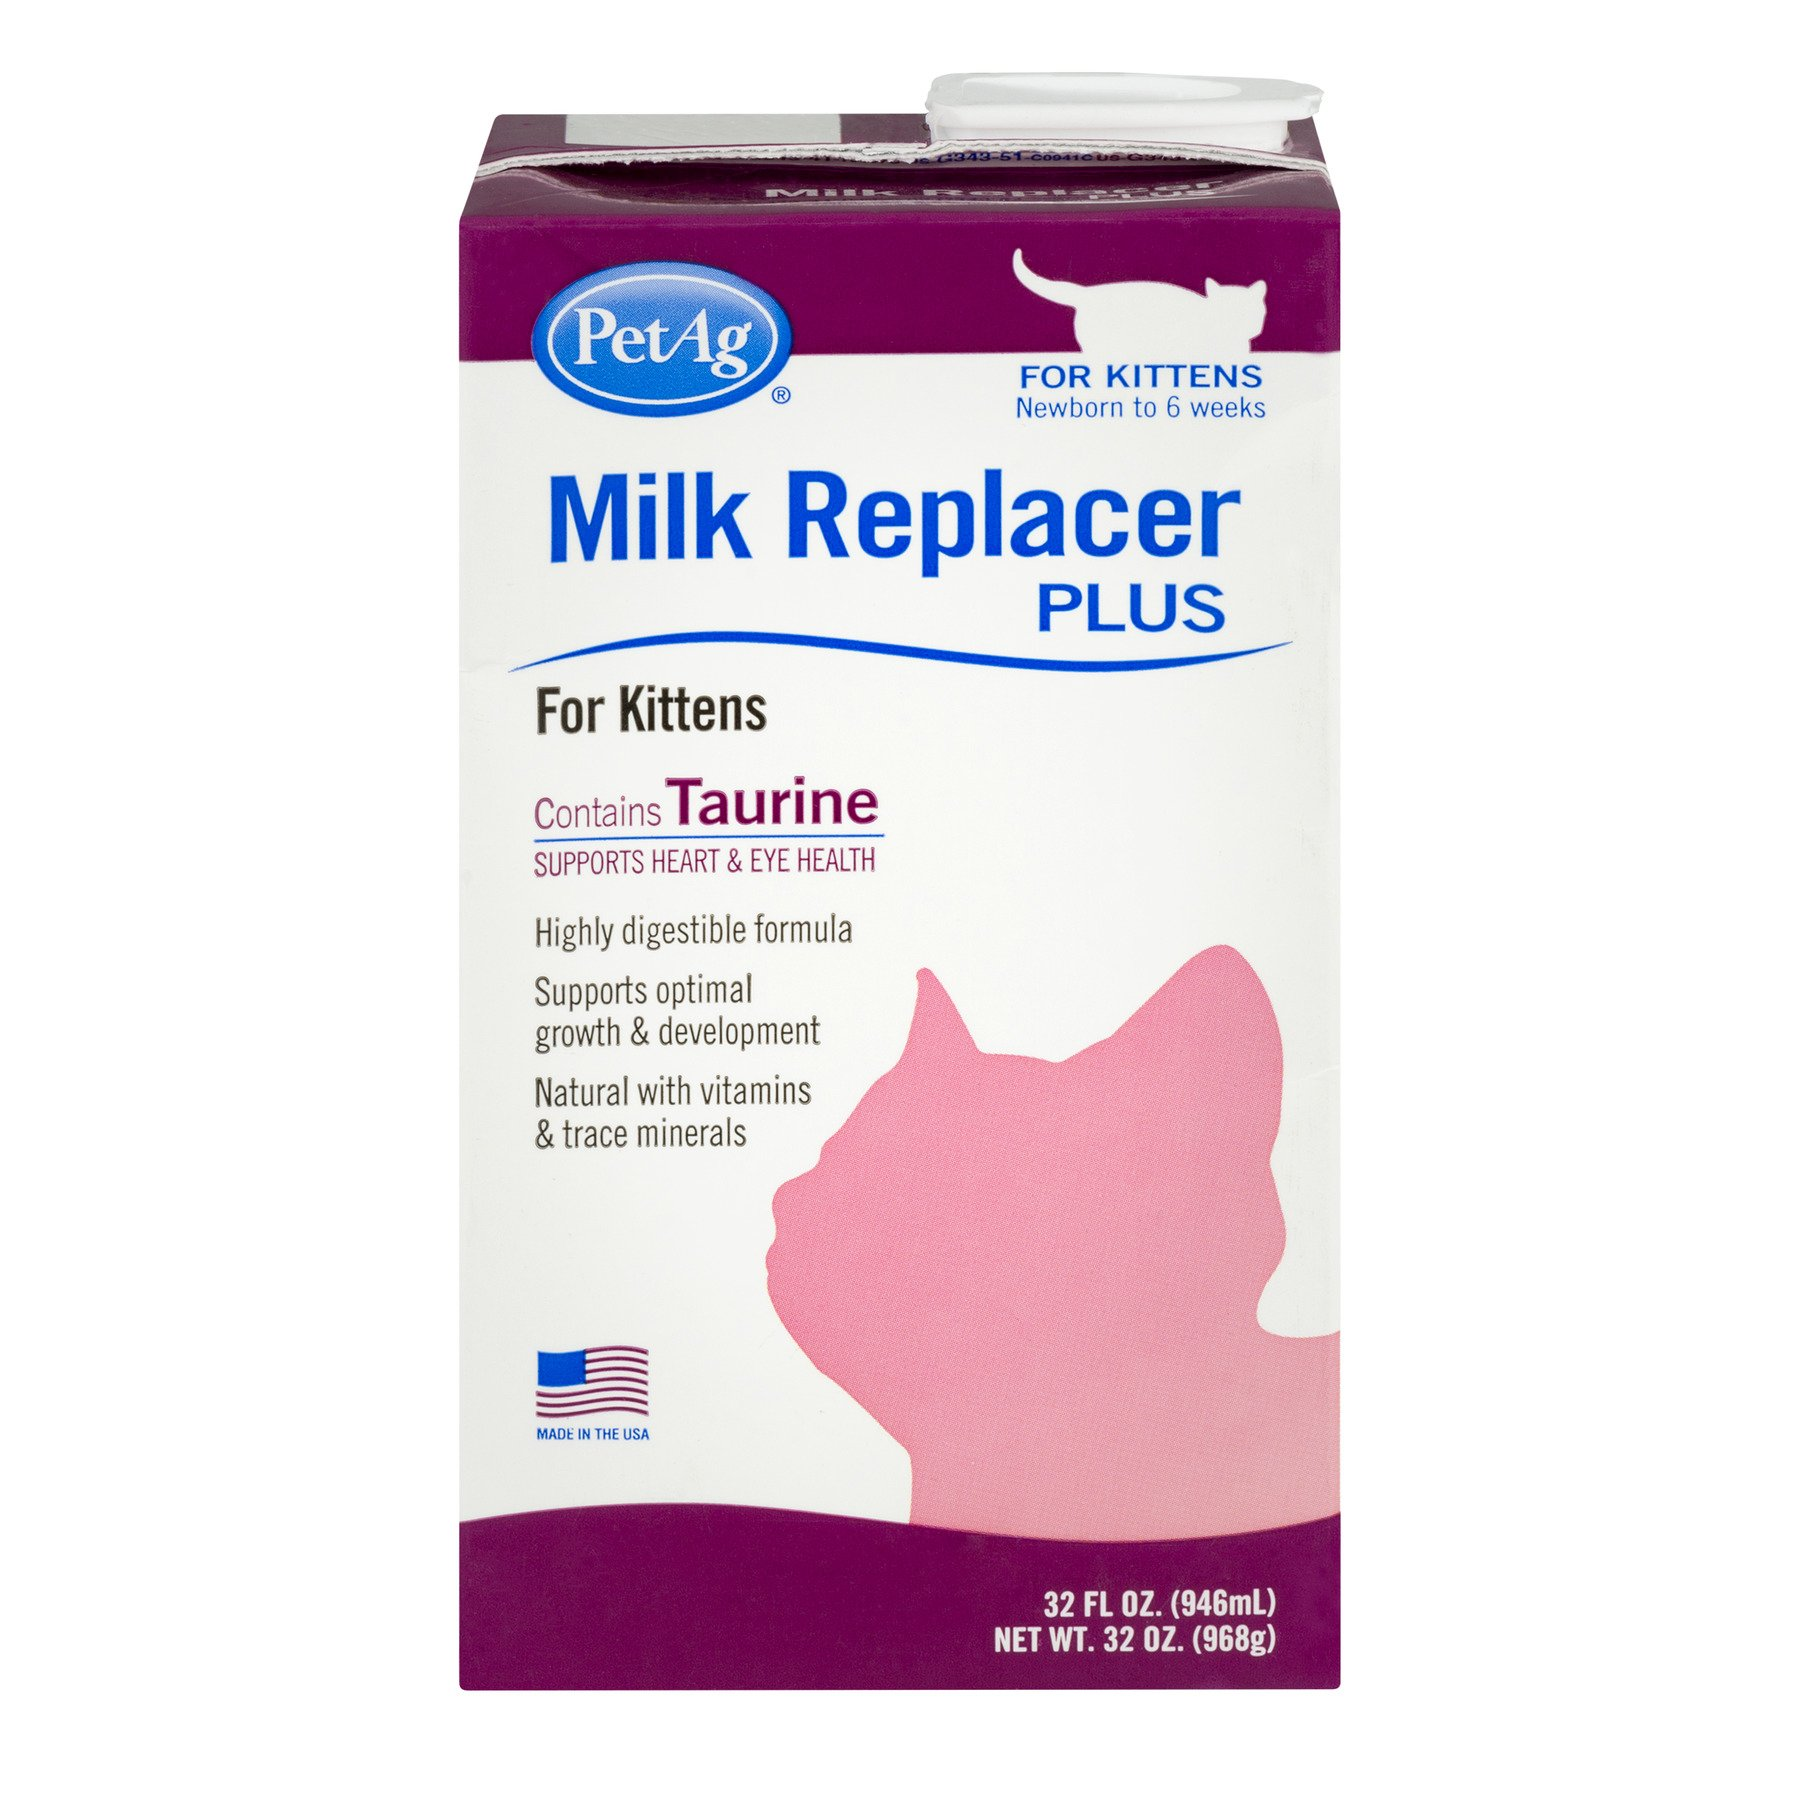 Pet Ag Milk Replacer Plus for Kittens, 32.0 FL OZ by Pet Ag